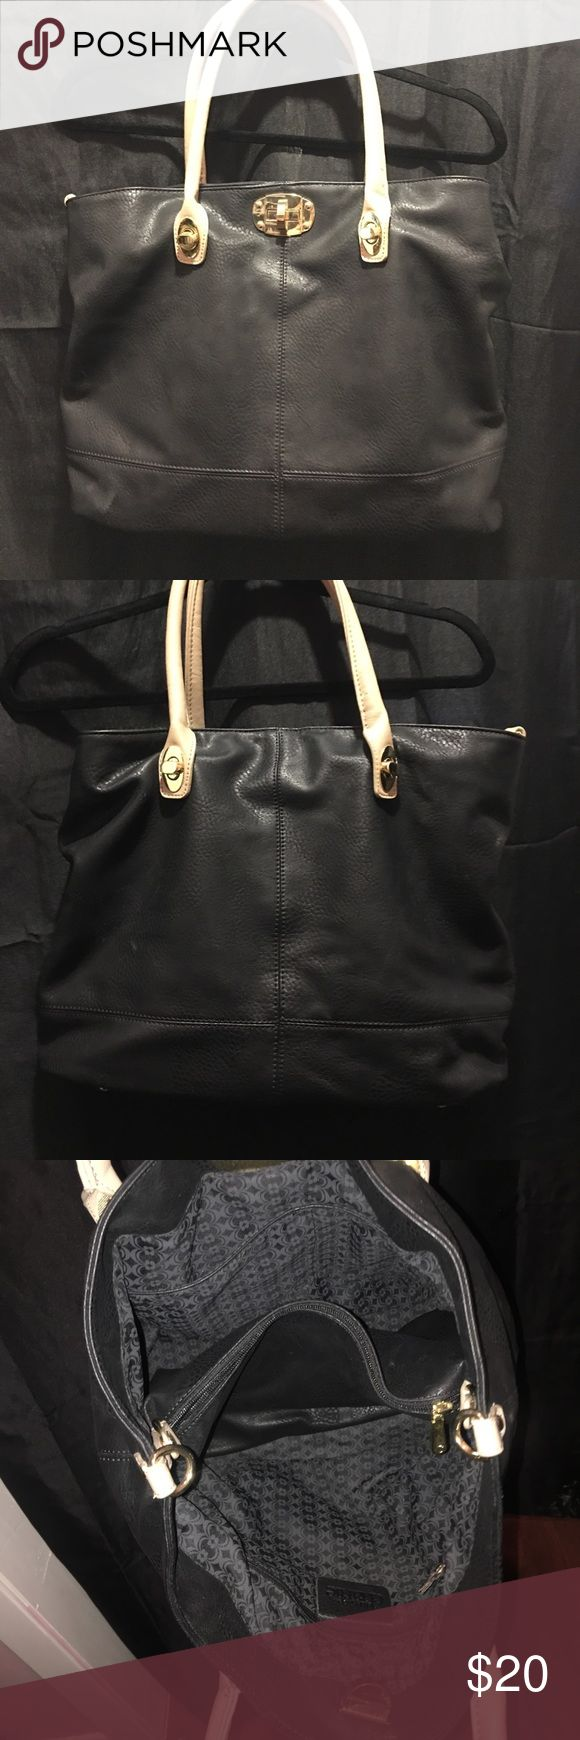 Black Charming Charlie Bag Perfect condition Charming Charlie bag. Fake leather, brown straps. Med-Large sized Tote. Charming Charlie Bags Totes